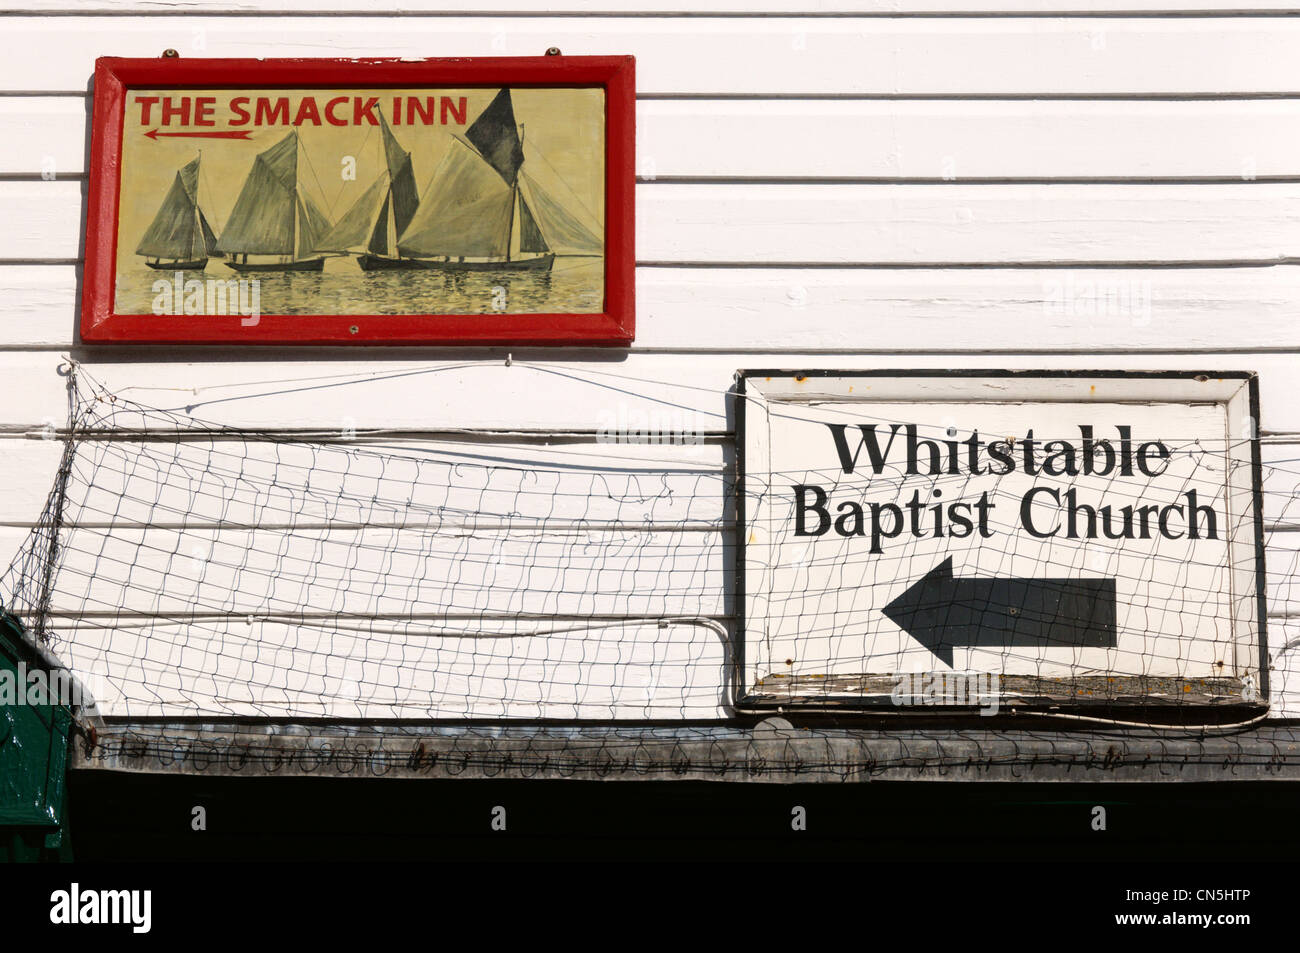 Signs for The Smack Inn and Baptist Church on a building in Whitstable High Street, Kent. - Stock Image